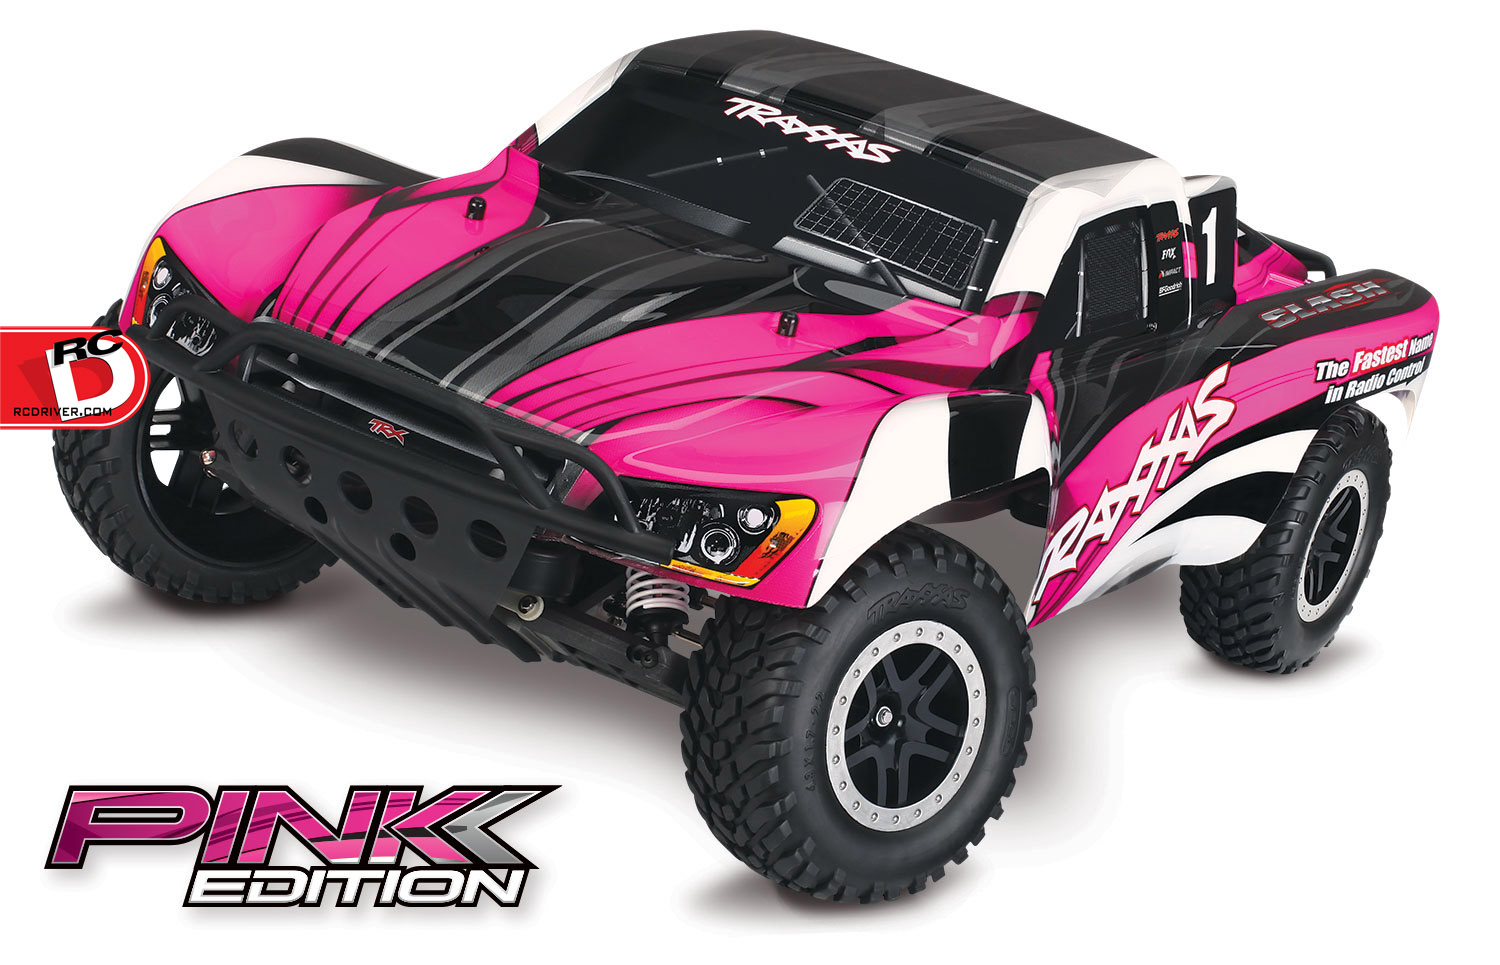 tamiya ready to run with Pink And Courtney Force Editions Of The Slash St Ede Bandit And Rustler on Pink And Courtney Force Editions Of The Slash St ede Bandit And Rustler together with 58036 additionally 32280335985 additionally Id27 likewise 162002963954.